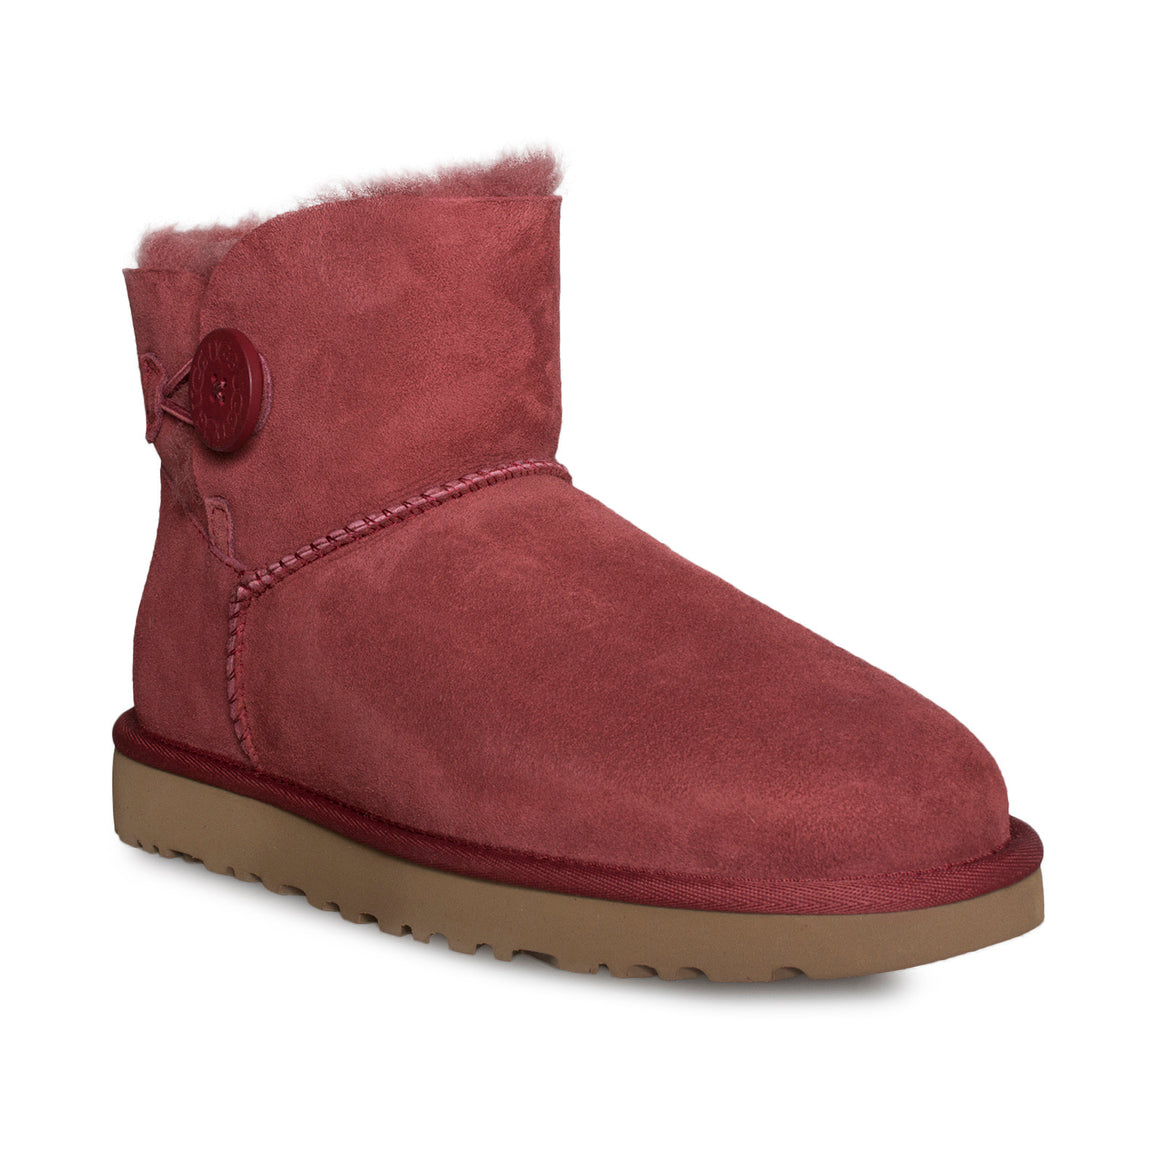 UGG Mini Bailey Button II Redwood Boots - Women's